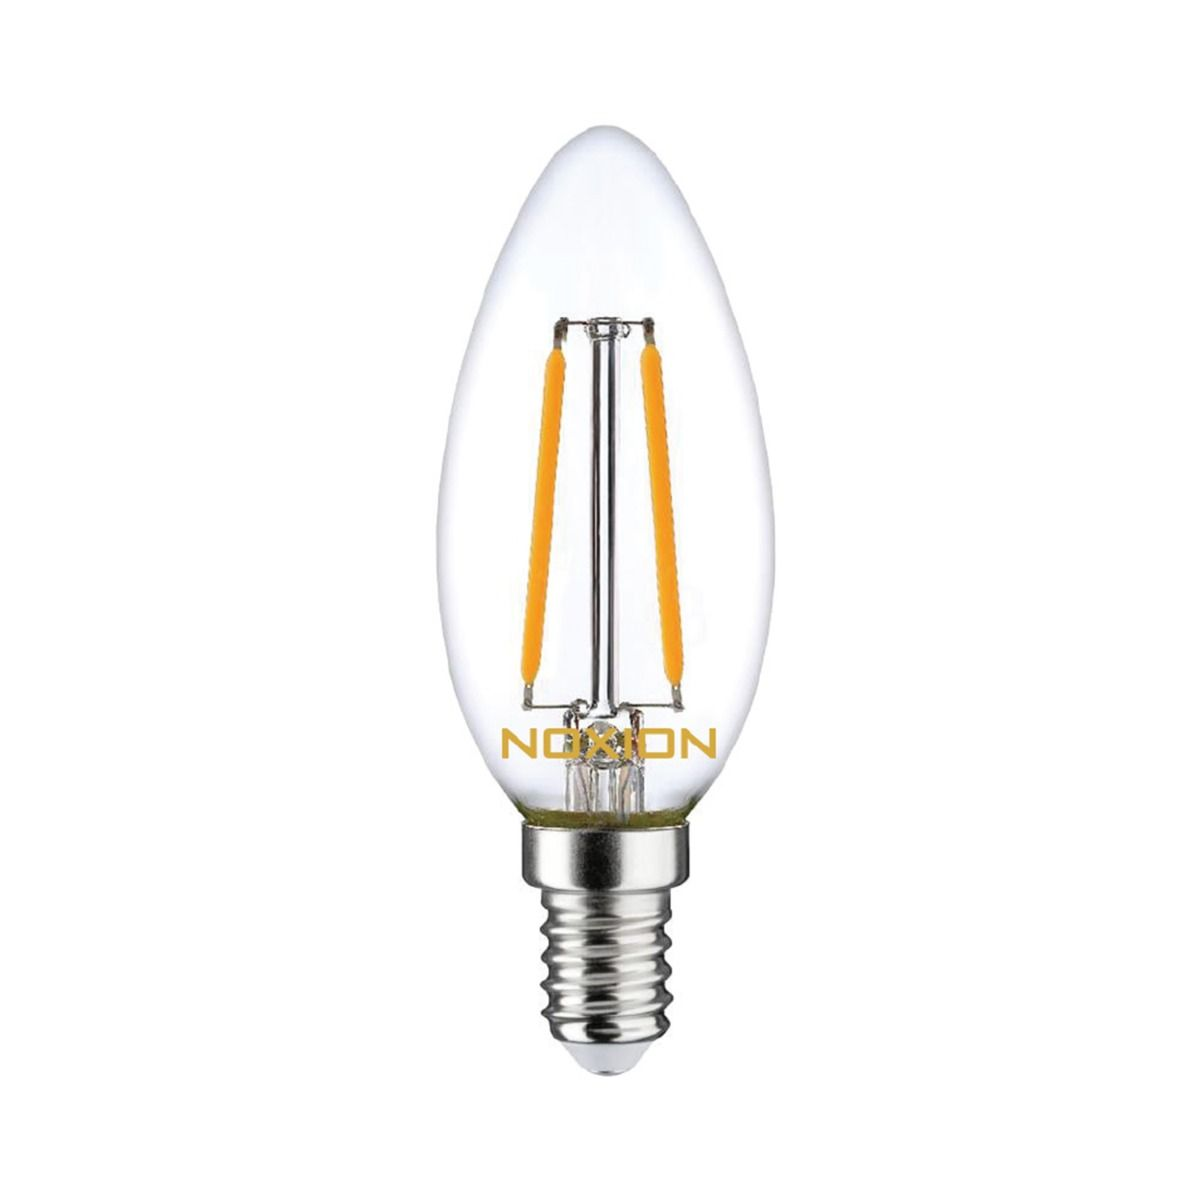 Noxion Lucent Filament LED Candle B35 E14 2.5W 250lm 827 | Dimmable  – replacer for 25W